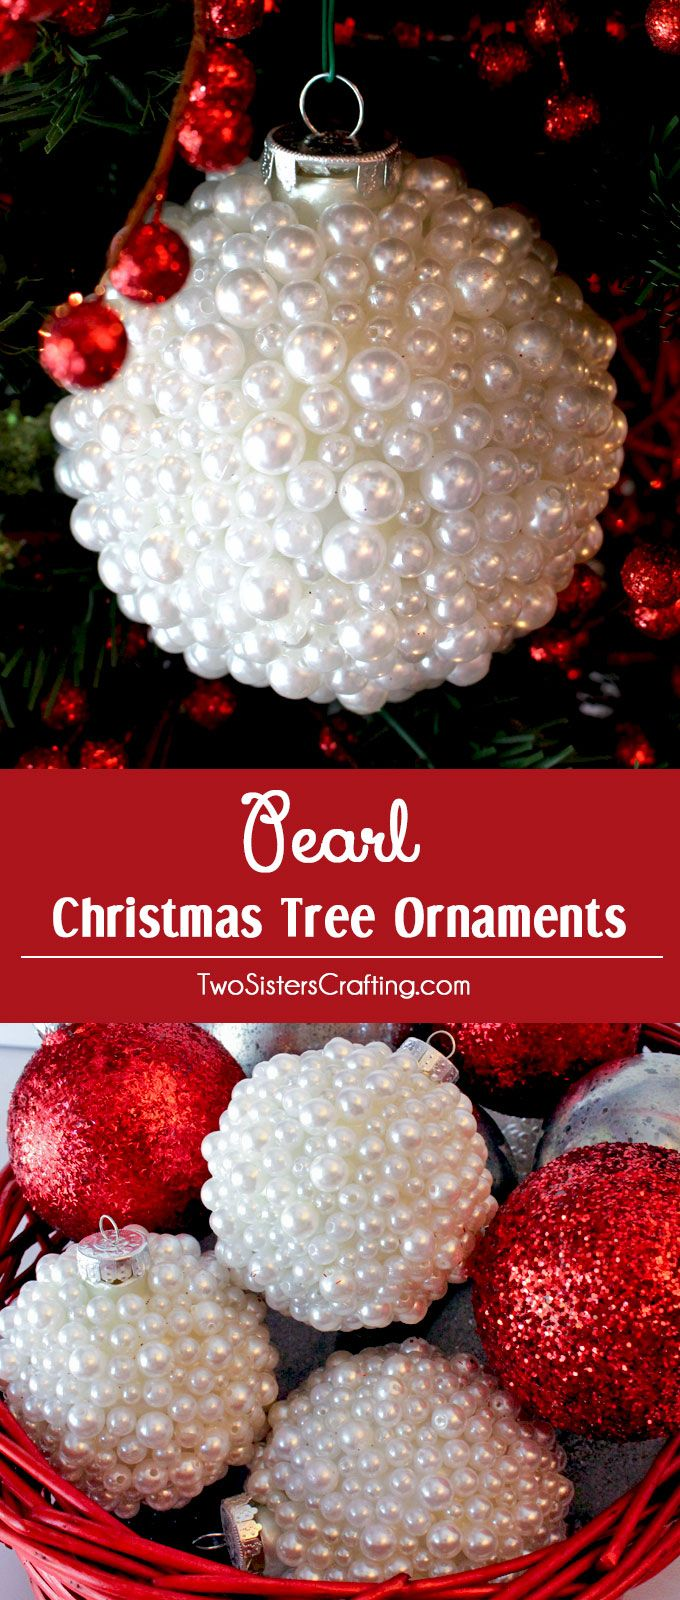 Pearl Christmas Tree Ornaments Unique Christmas Ornaments Christmas Ornaments Christmas Crafts